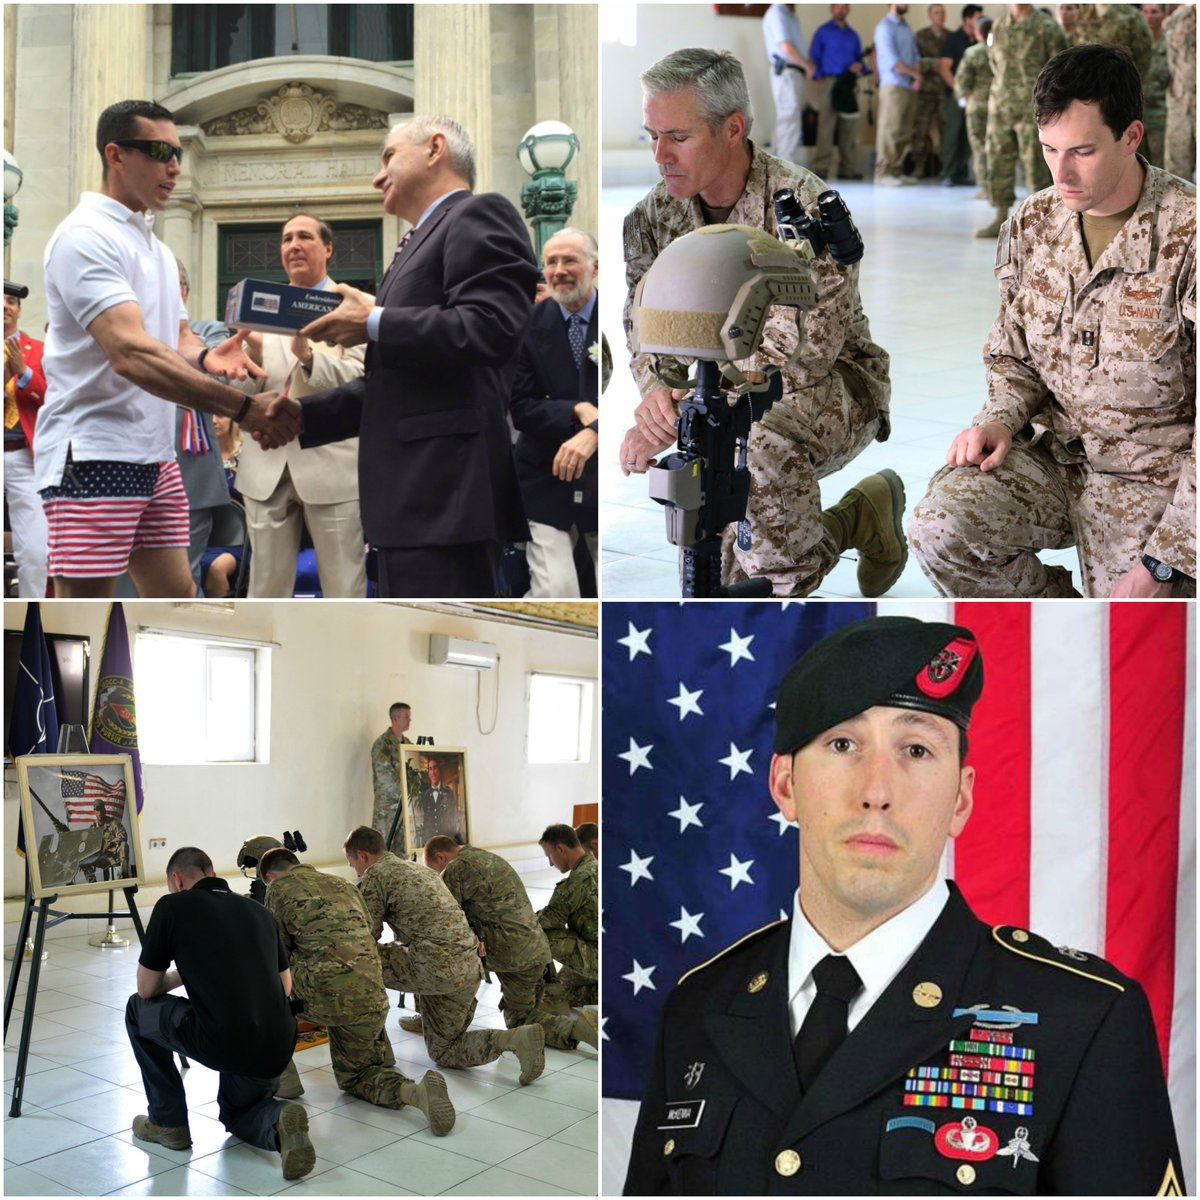 Https Www Reed Senate Gov News Releases Ri Delegation Seeks To Name Post Office In Honor Of 1st Sgt P Andrew Mckenna Pic Twitter Txpcwtbdp0